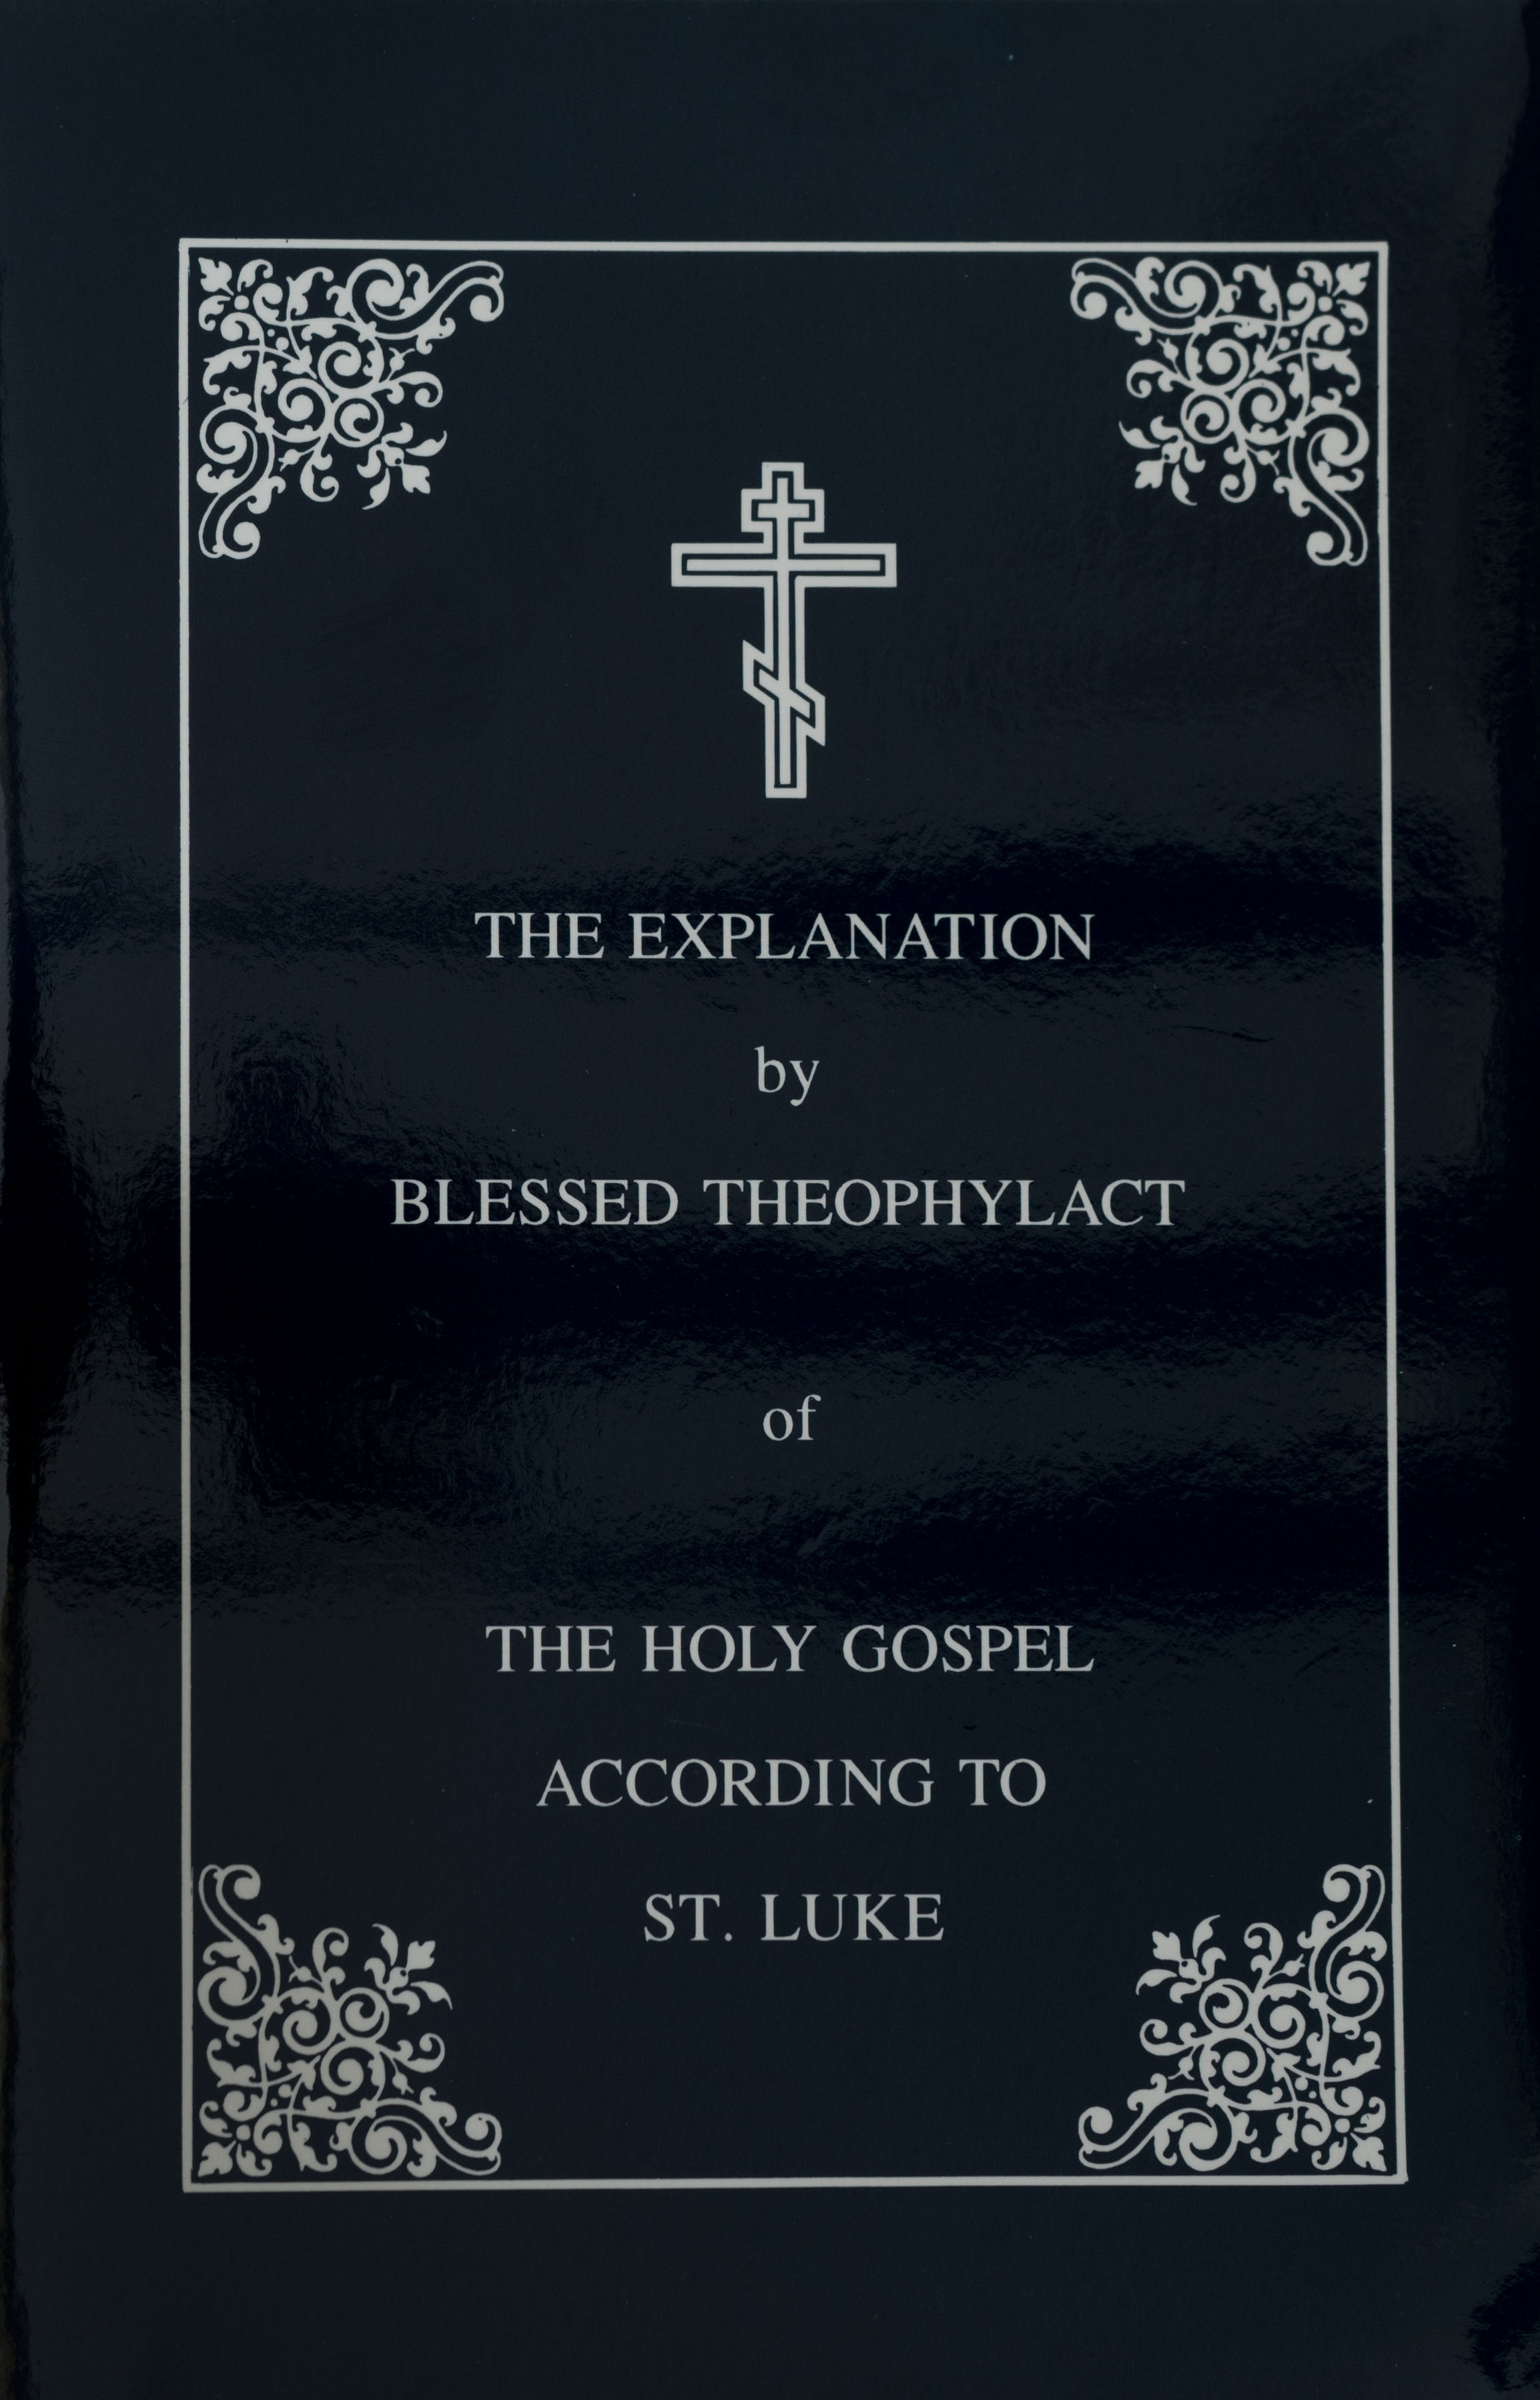 The Explanation by Blessed Theophylact of The Holy Gospel According to St Luke